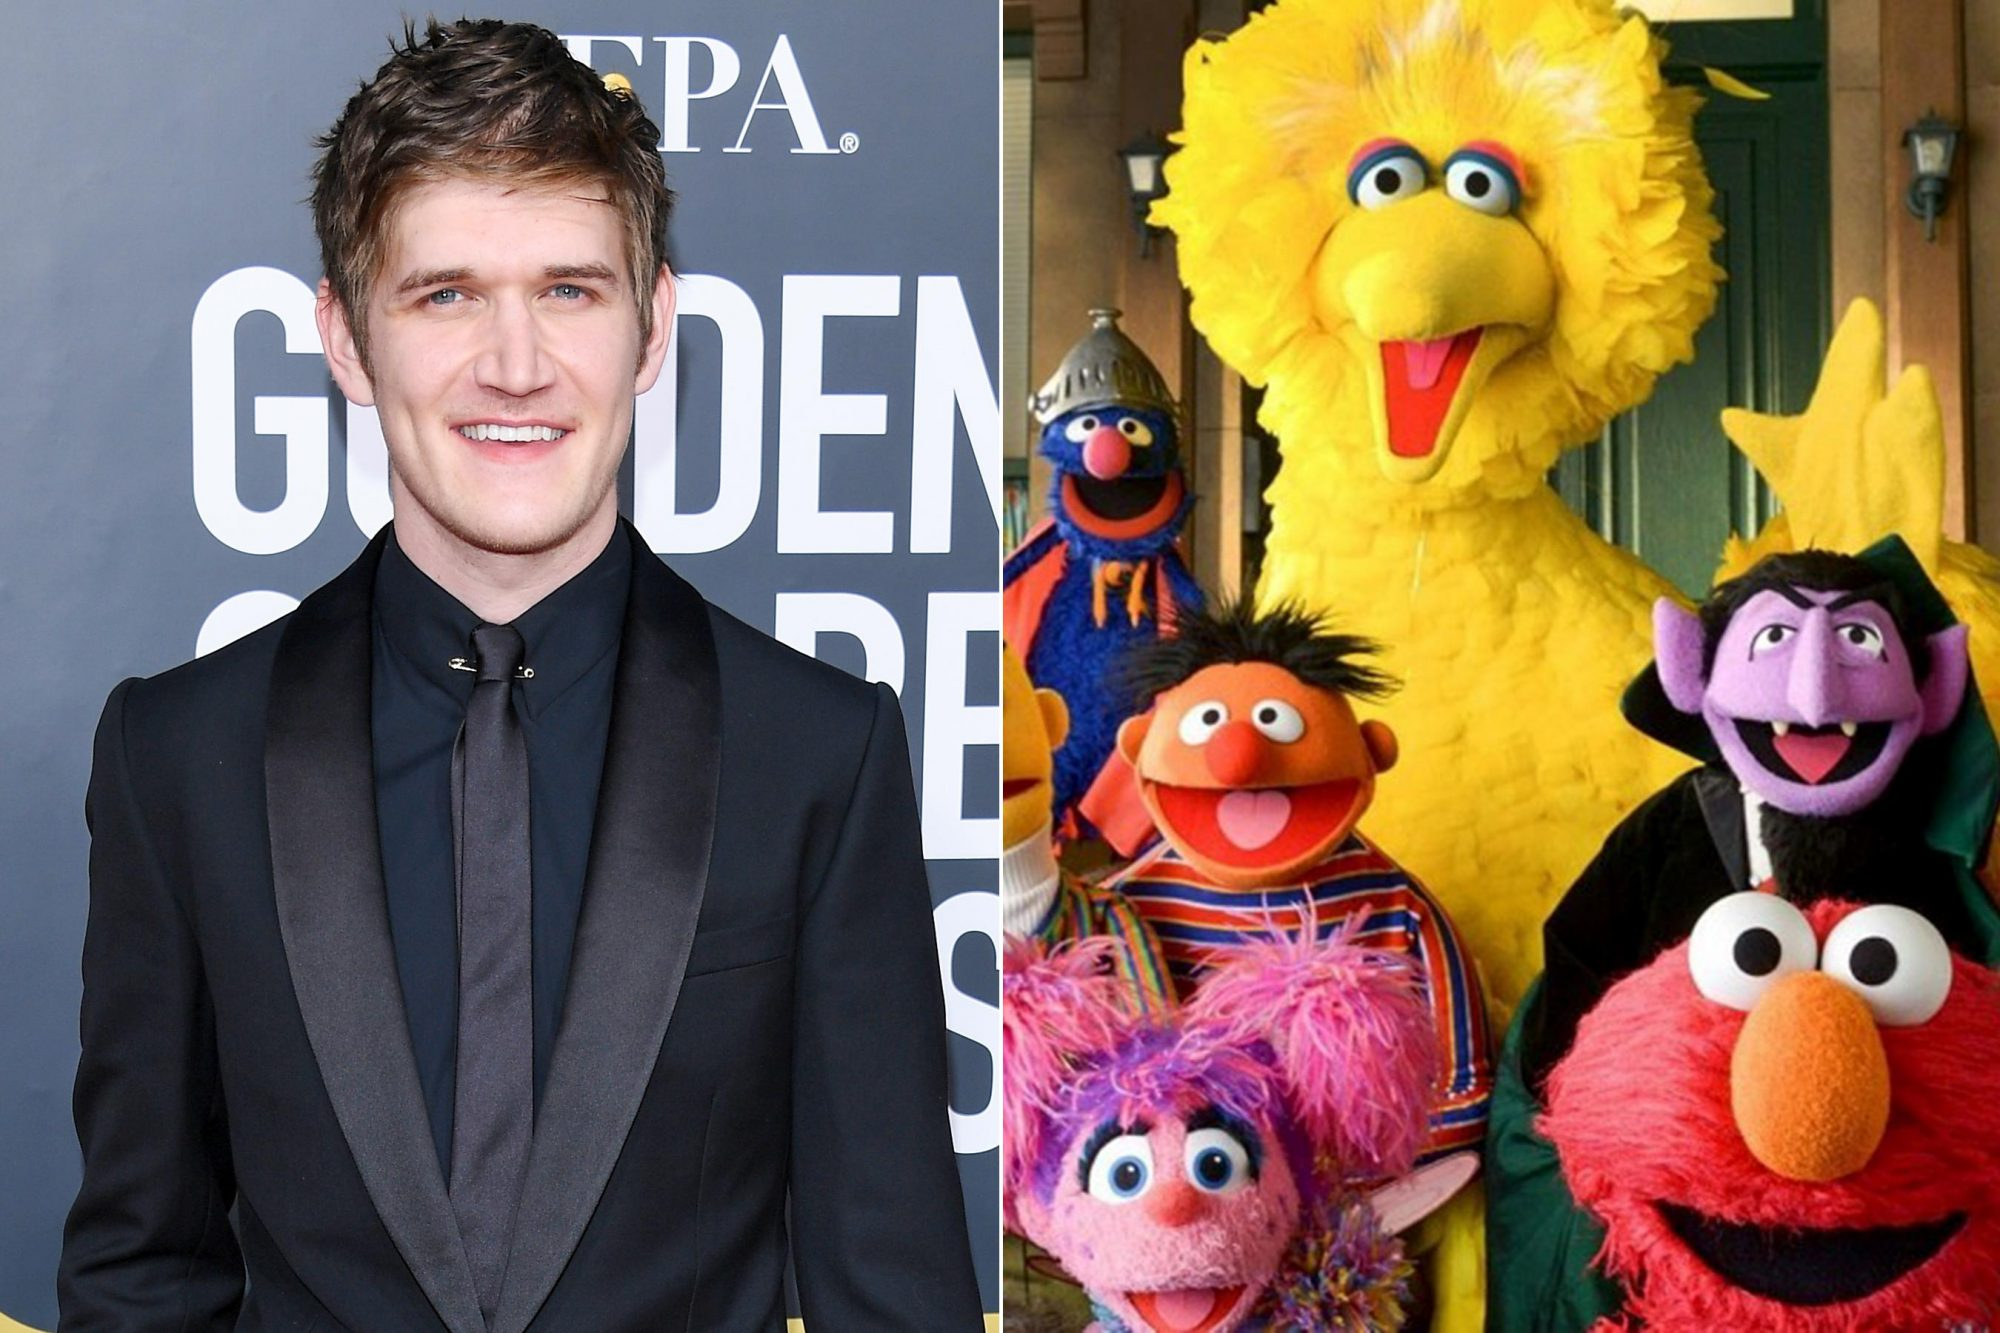 BEVERLY HILLS, CA - JANUARY 06: Bo Burnham attends the 76th Annual Golden Globe Awards at The Beverly Hilton Hotel on January 6, 2019 in Beverly Hills, California. (Photo by Daniele Venturelli/WireImage) Sesame Street CR: PBS Kids